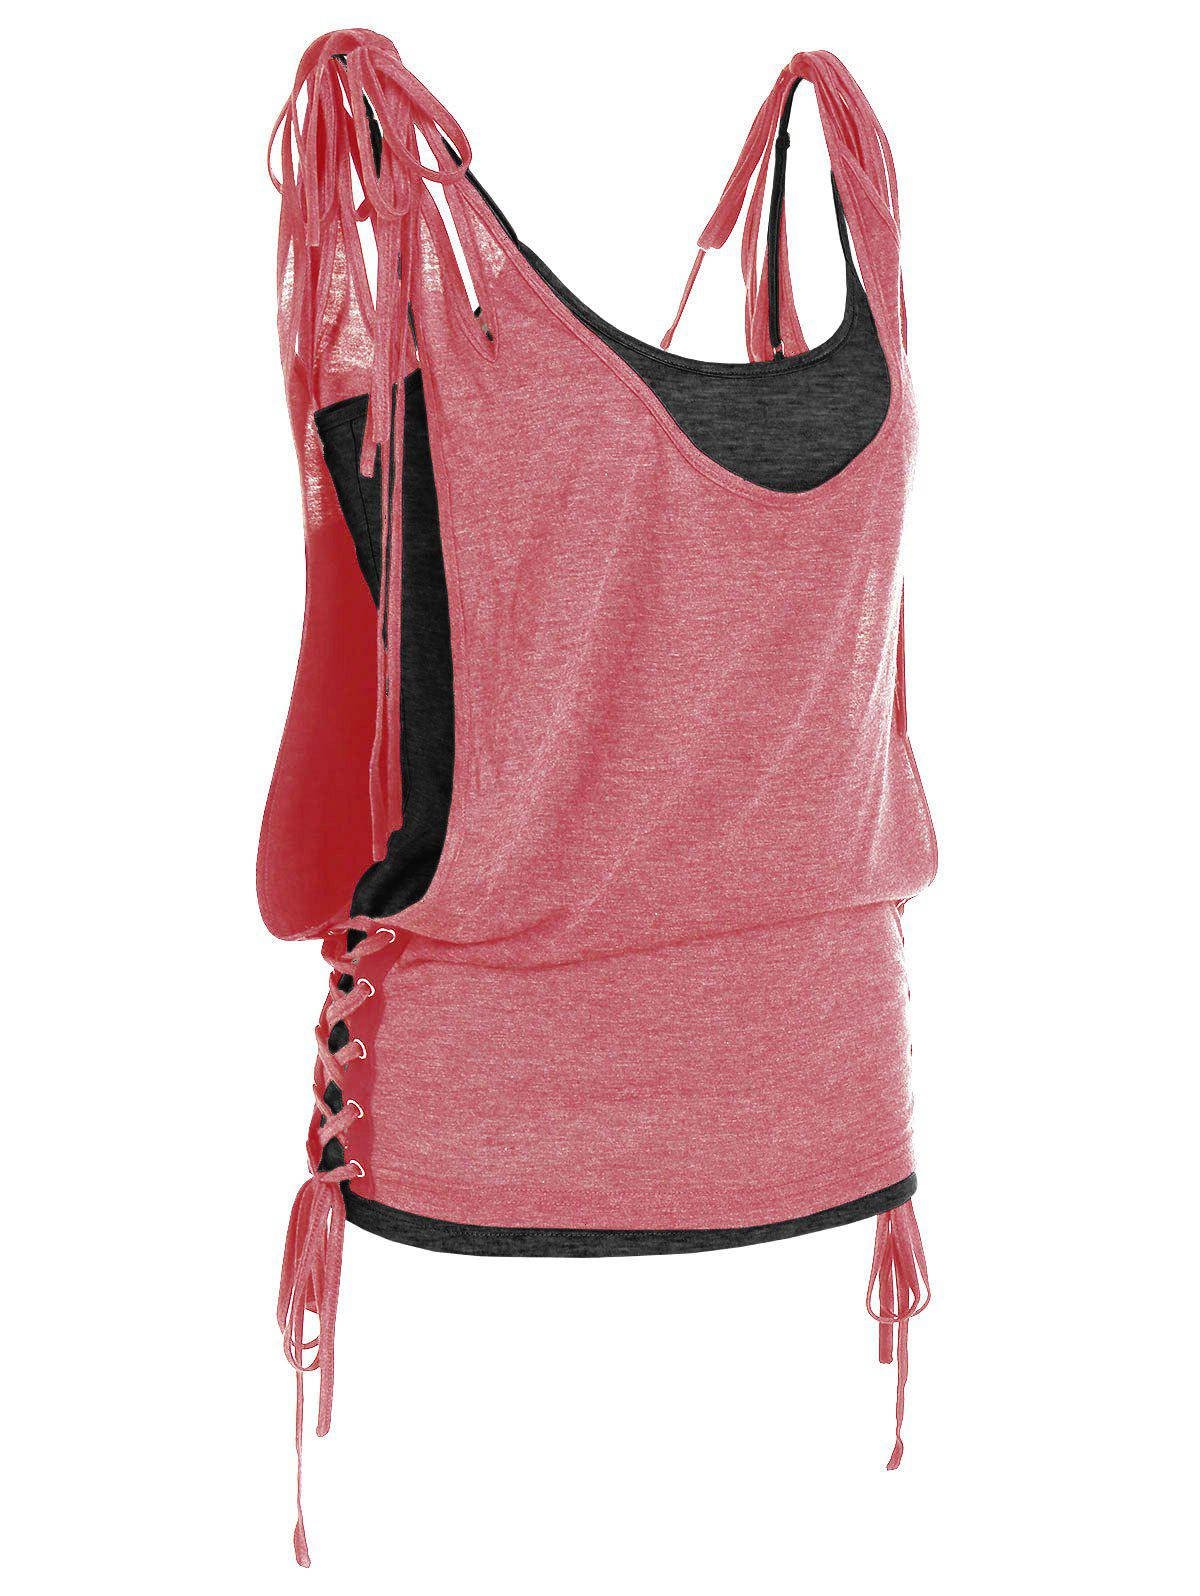 New Tie Shoulder Lace Up Top and Camisole Set